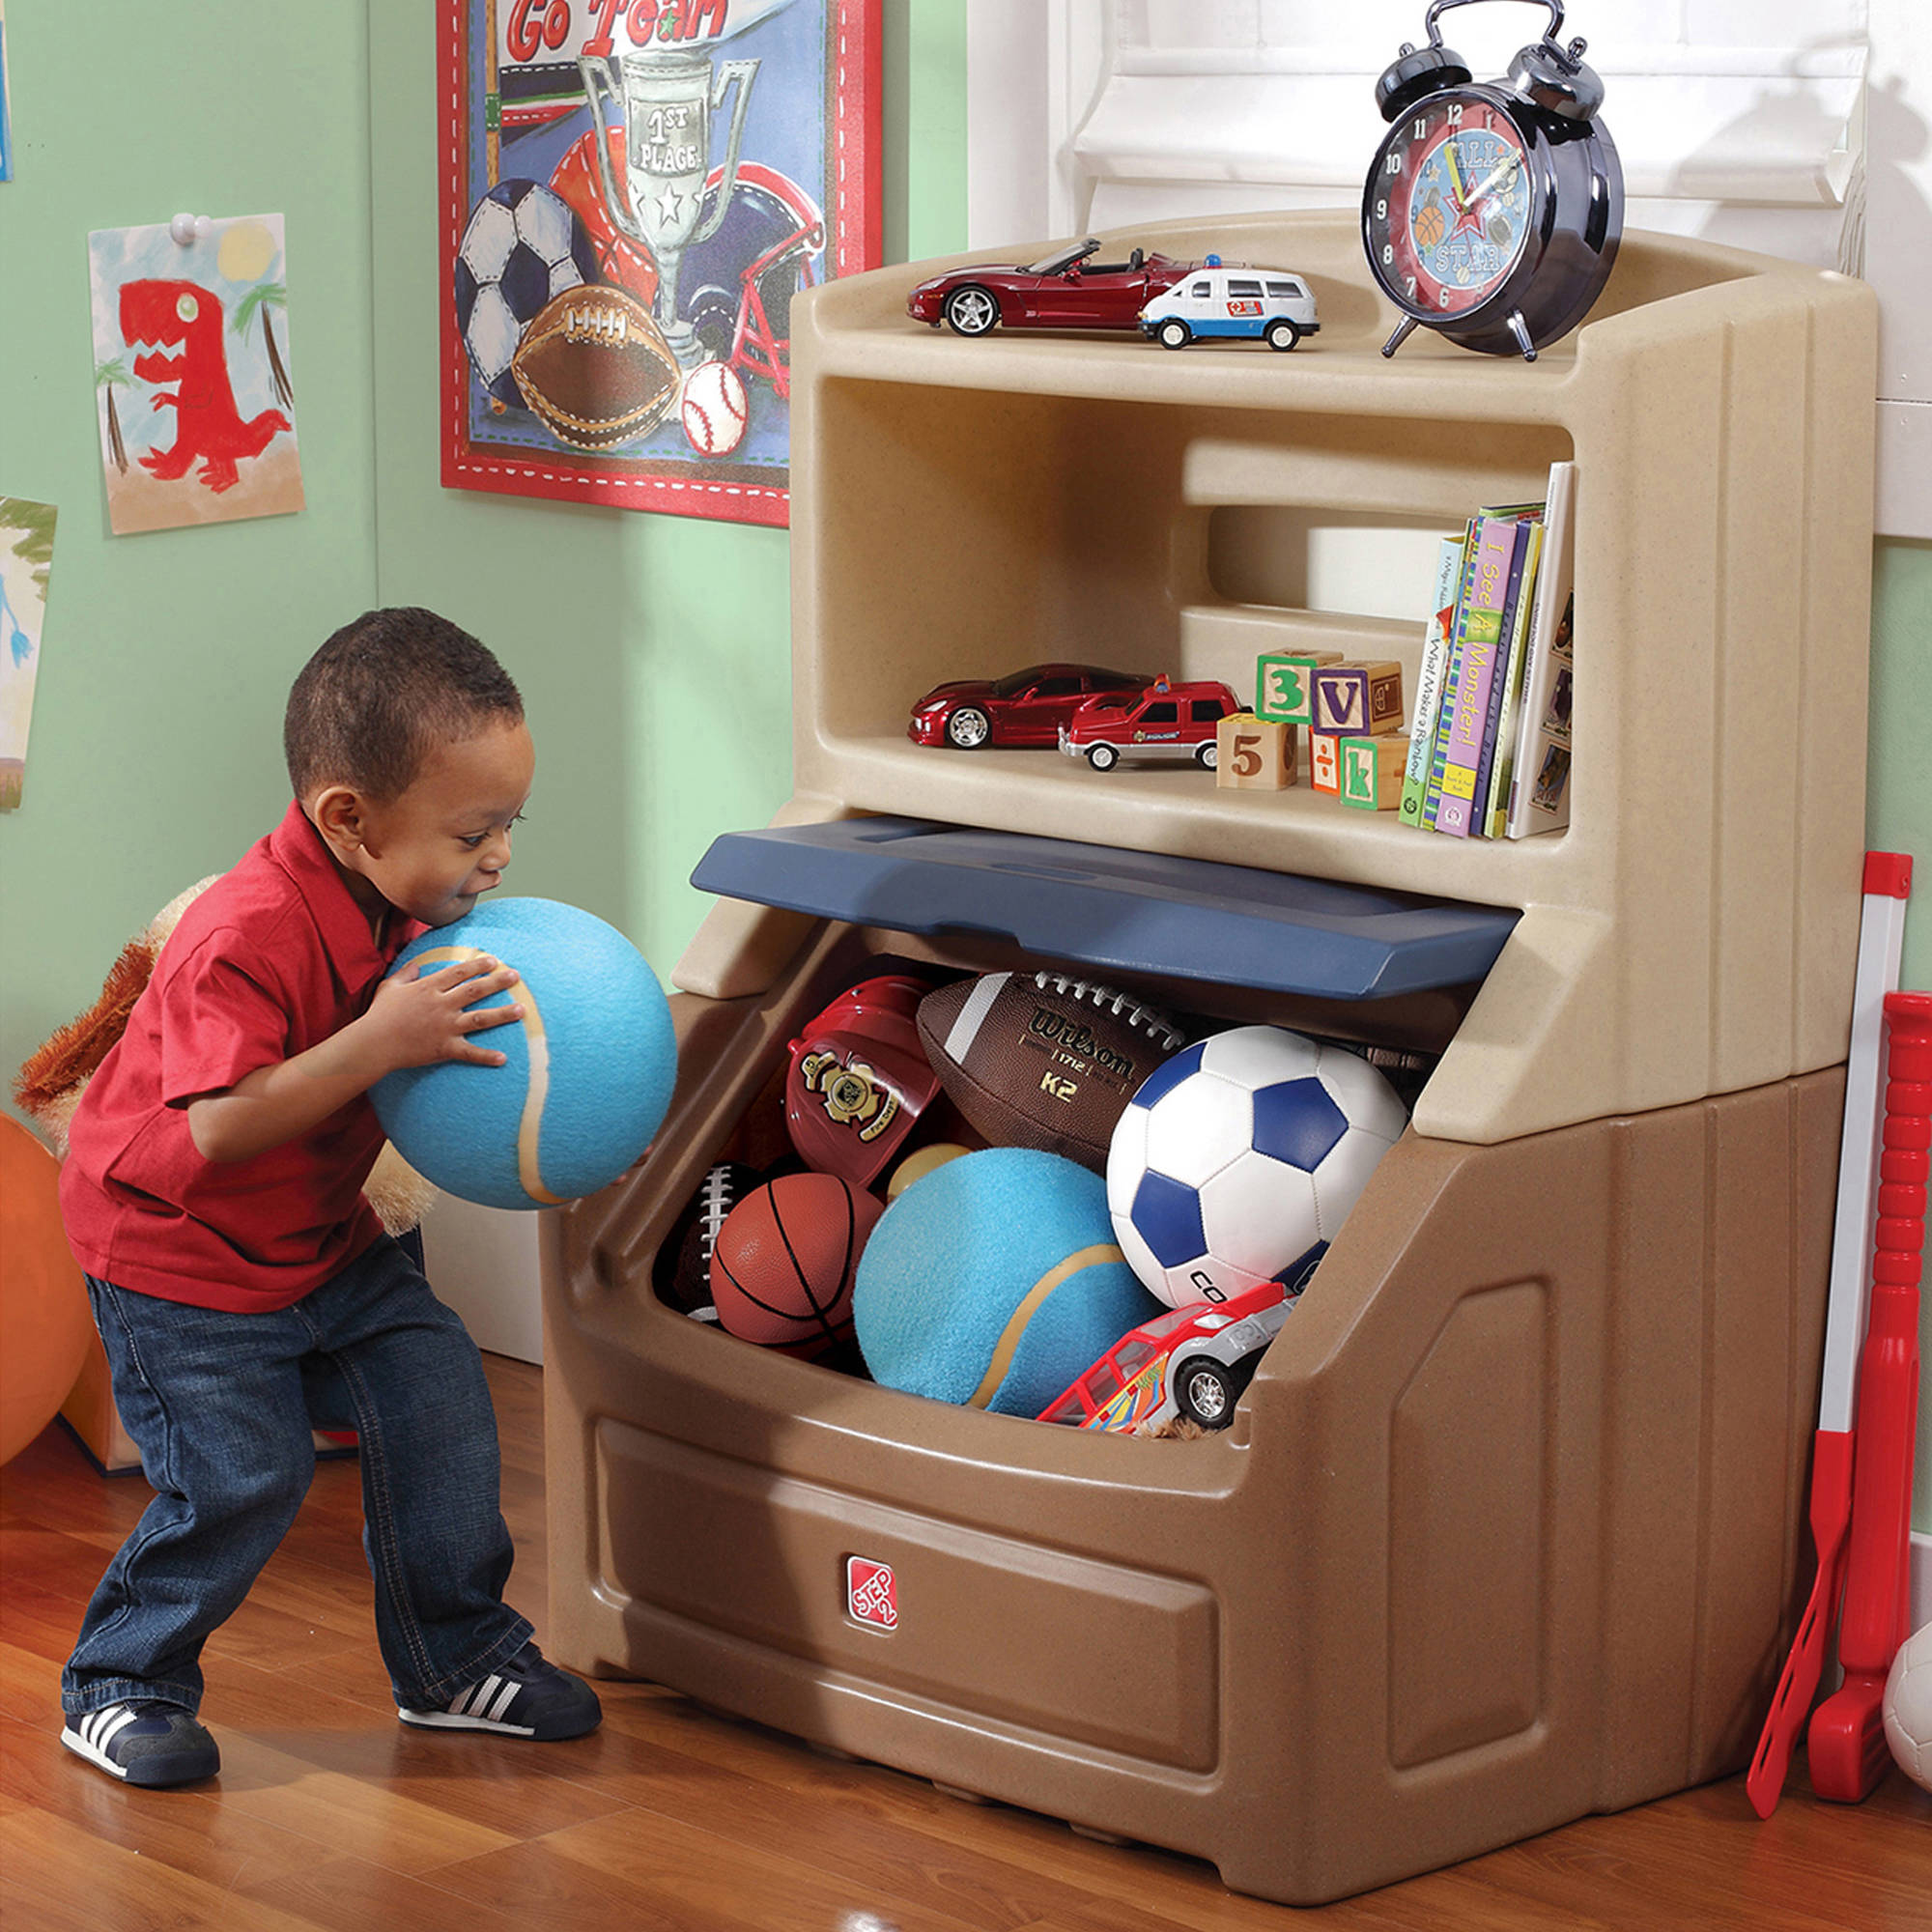 Toy Box Toys Details About Kids Toy Box Bookcase Storage Chest Bedroom Playroom Organizer Bin Trunk Bench